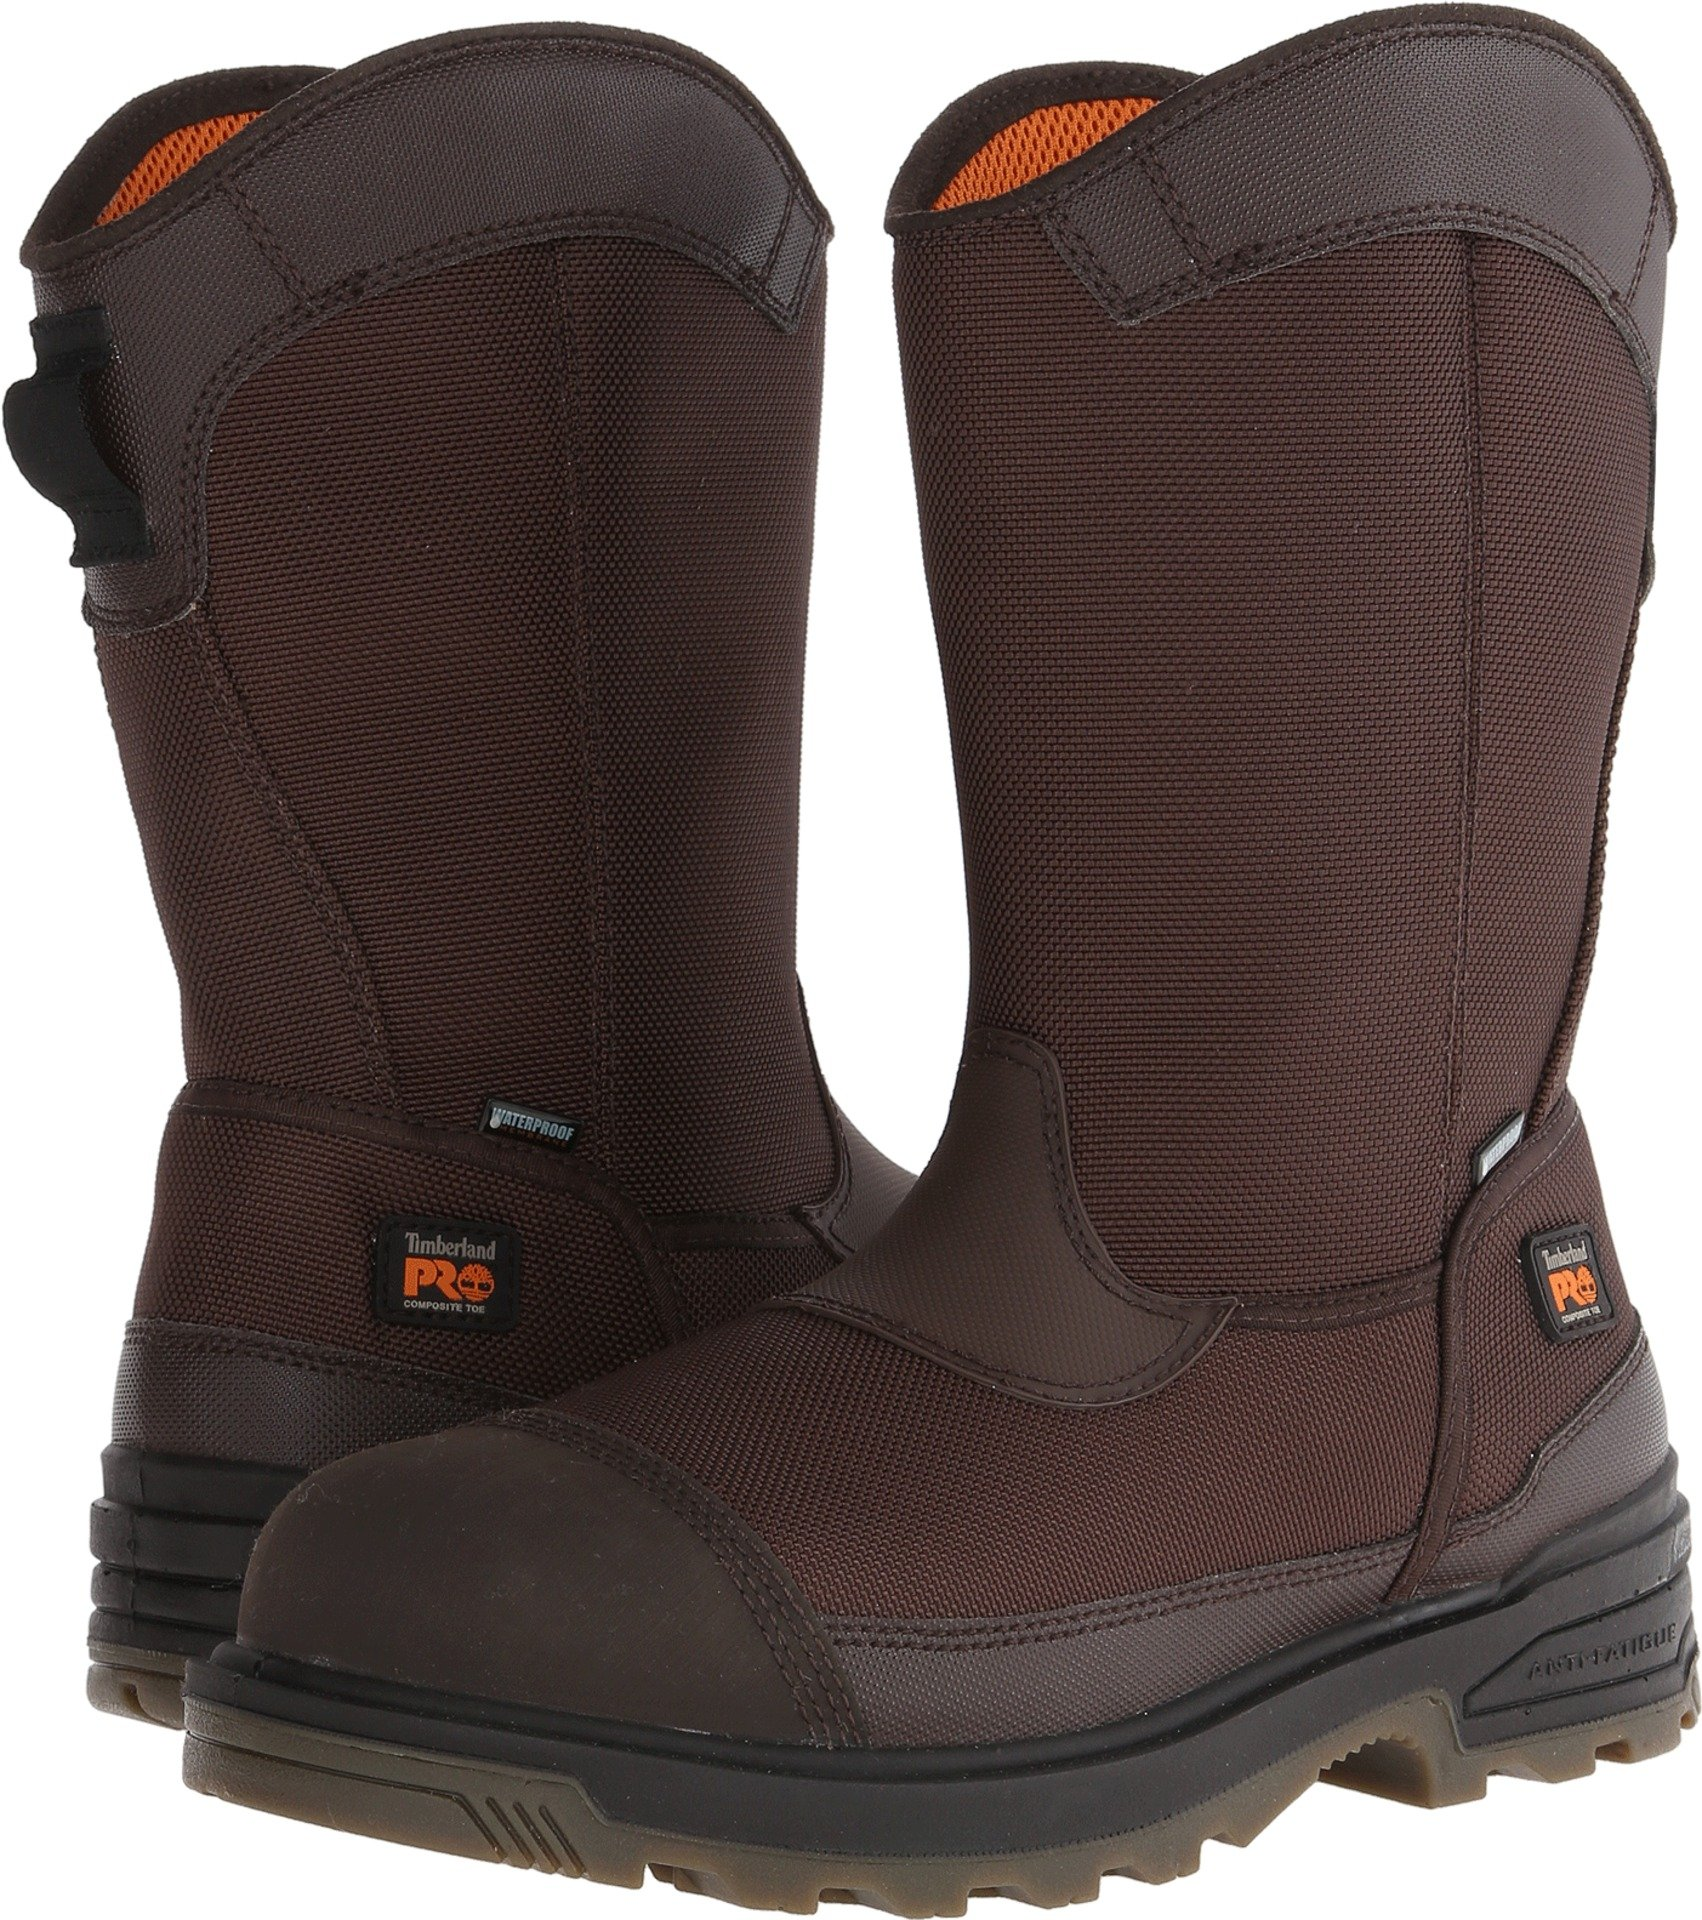 Timberland PRO Men's Mortar Pull-On CSA Comp Toe Waterproof Work and Hunt Boot, Brown Ballistic Nylon, 9 W US by Timberland PRO